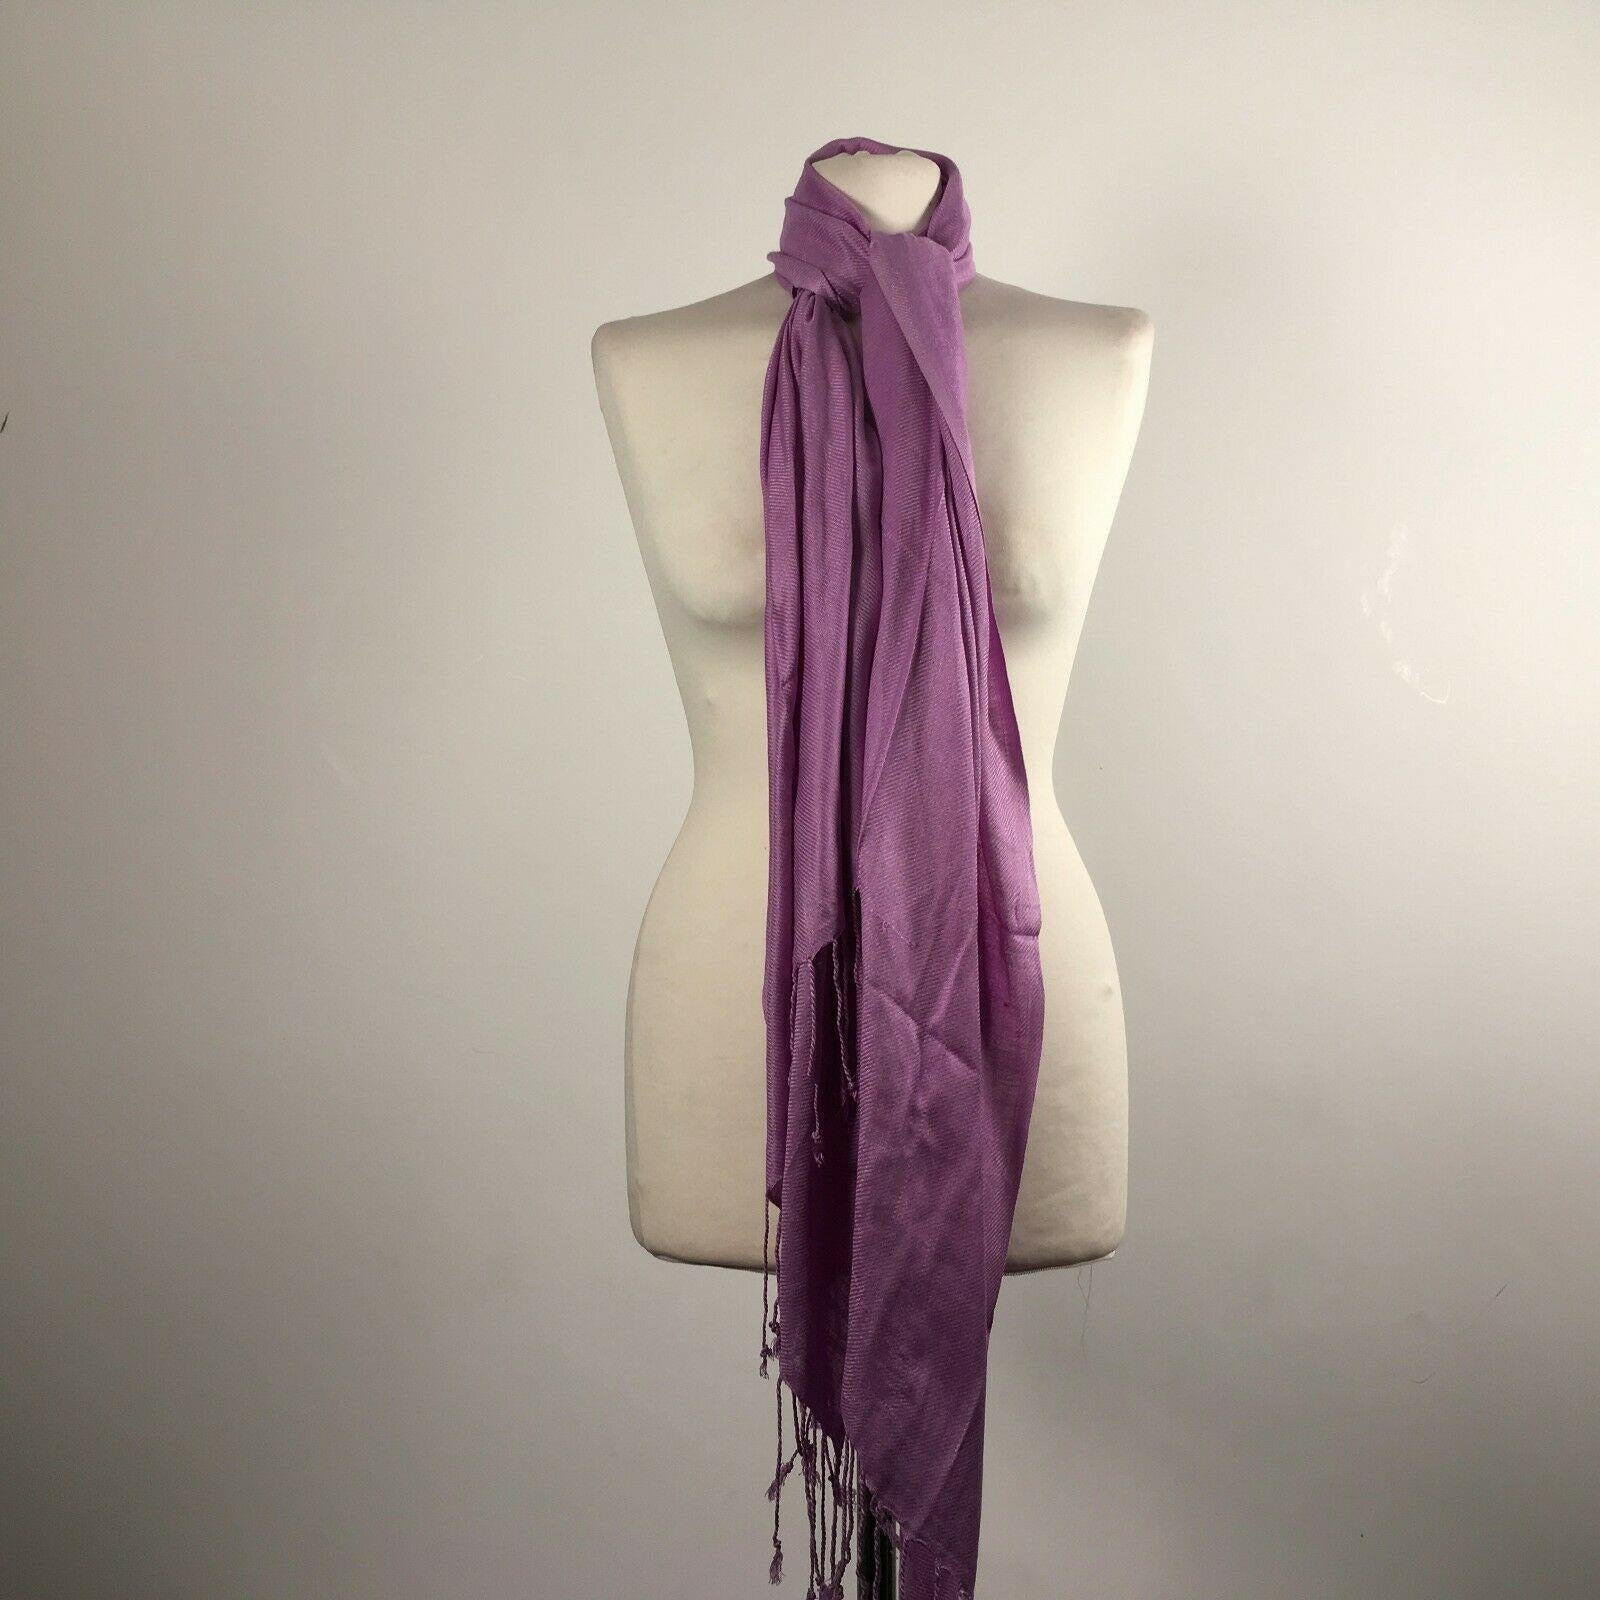 Ladies Pashmina Pashmeena Shawl Hijab Scarf Many colours Wrap stole M415 Mtex